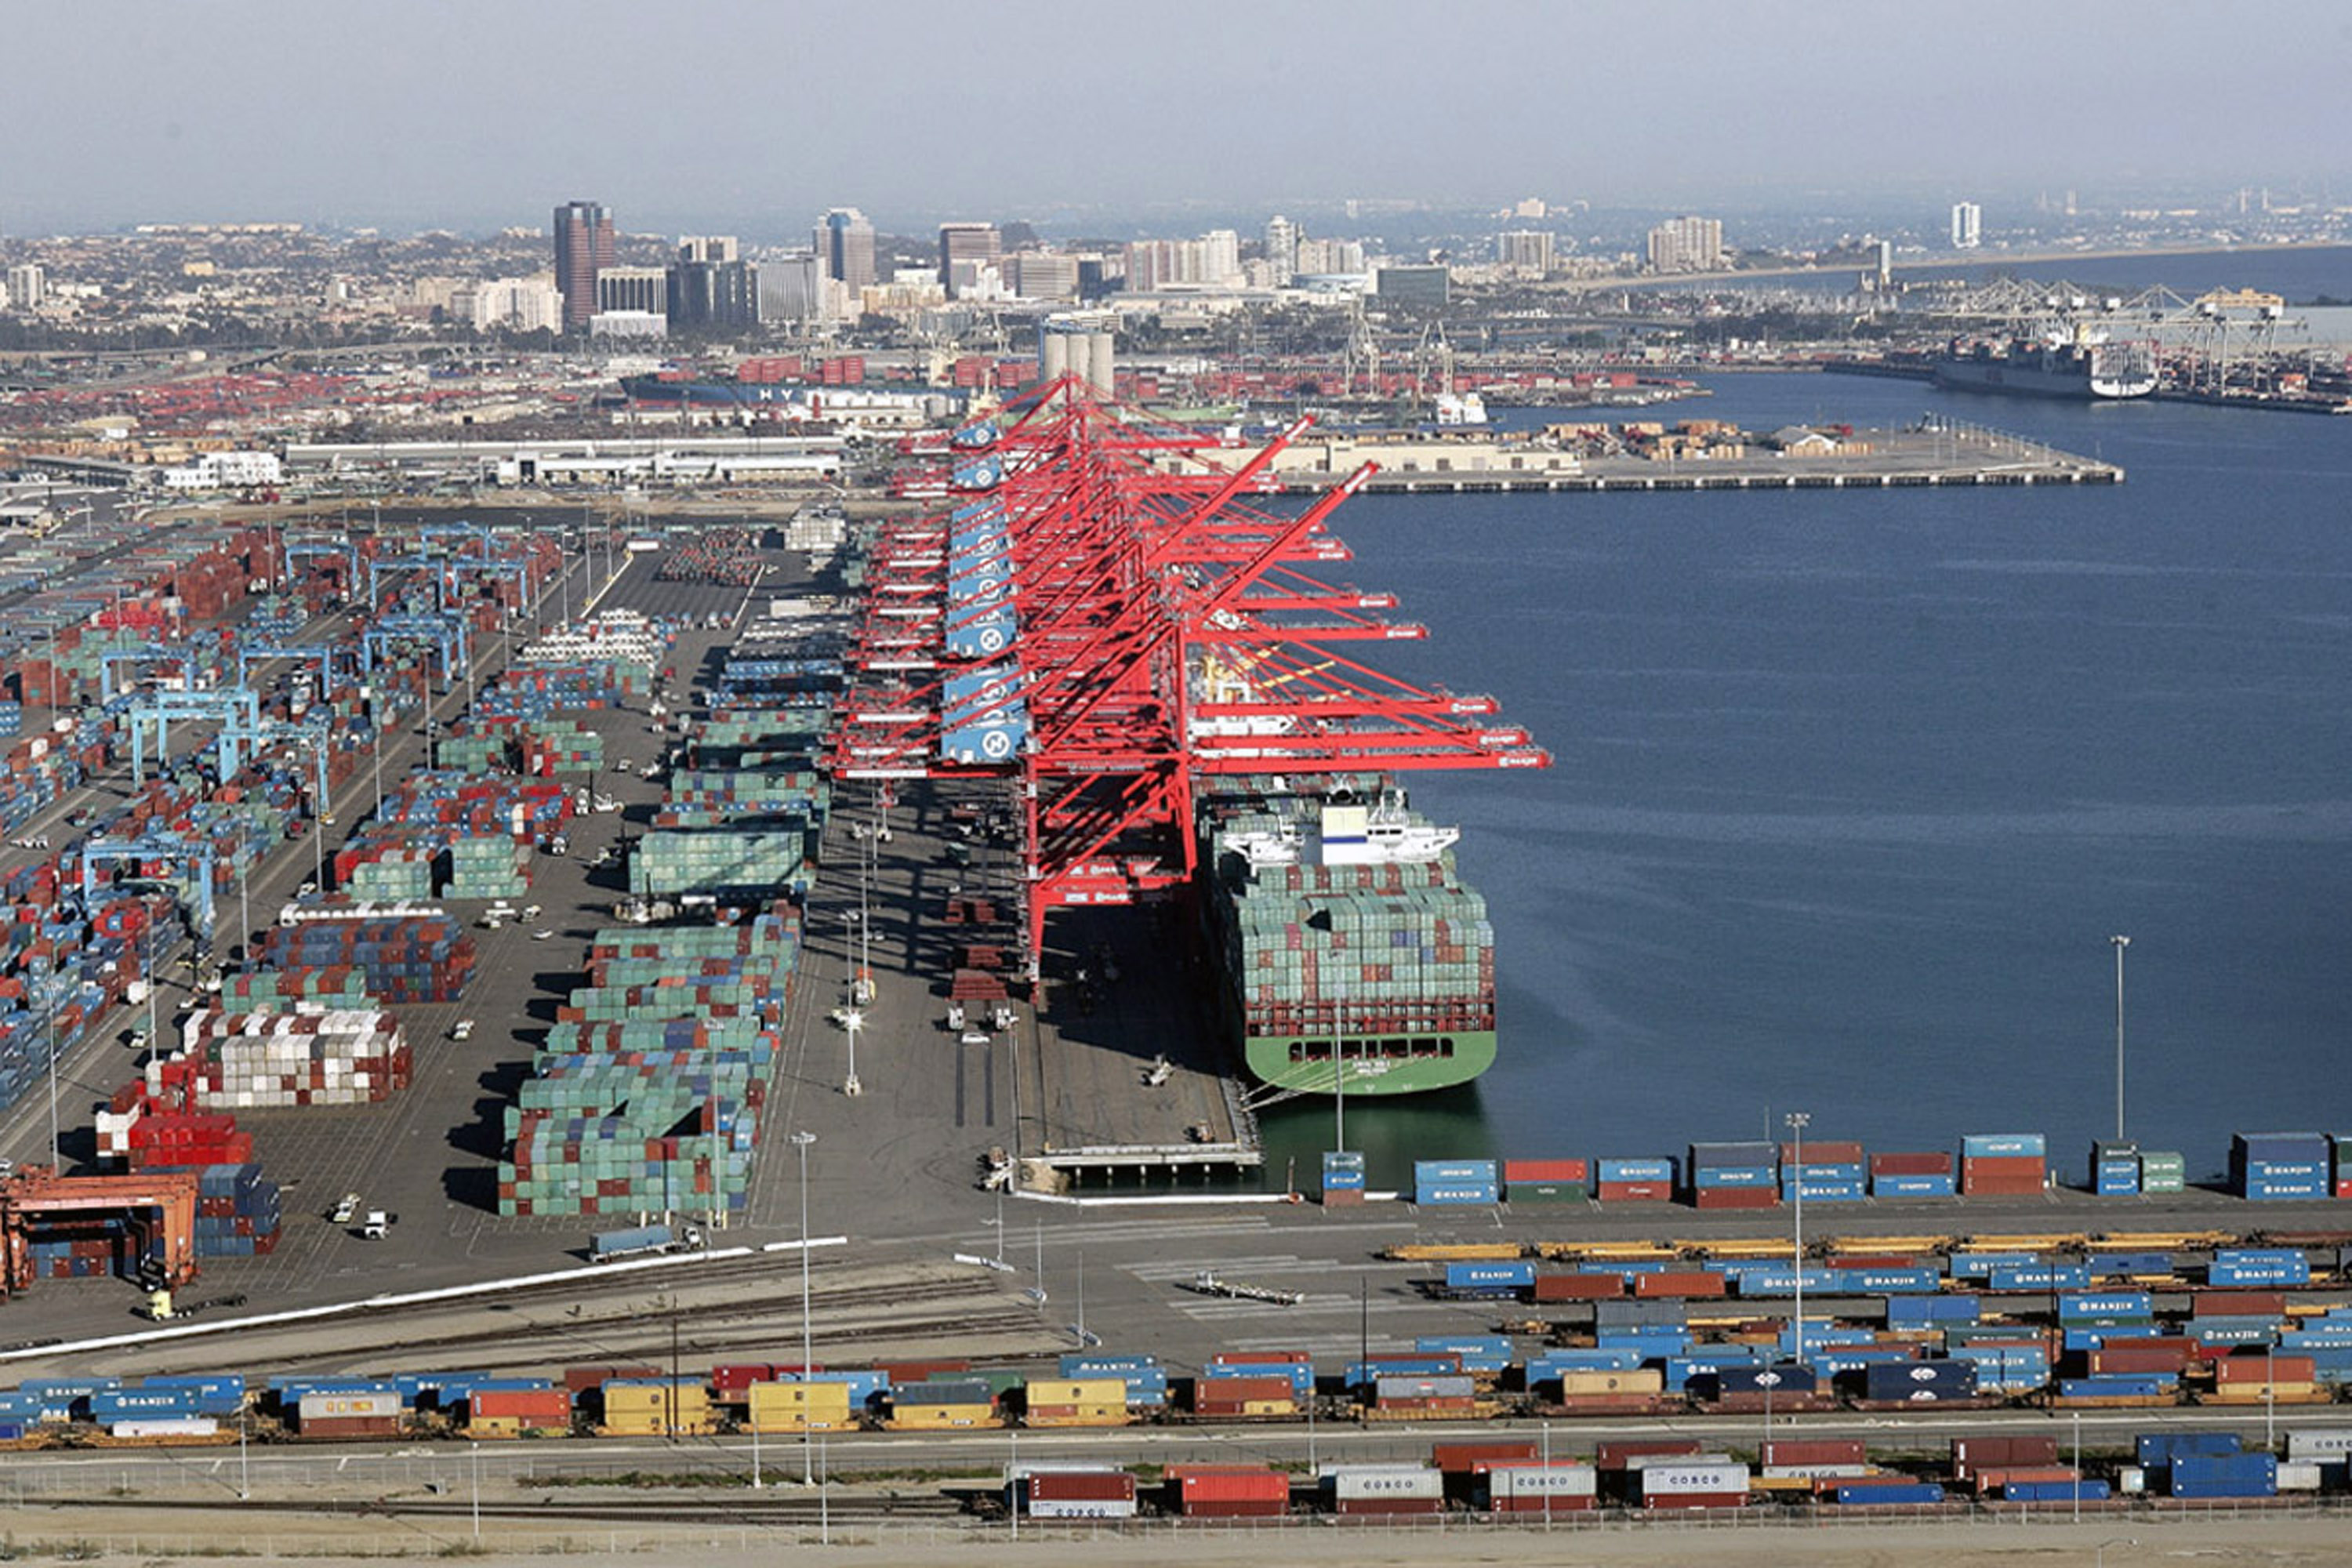 Funding provides educational platform for Port of Long Beach to reach students